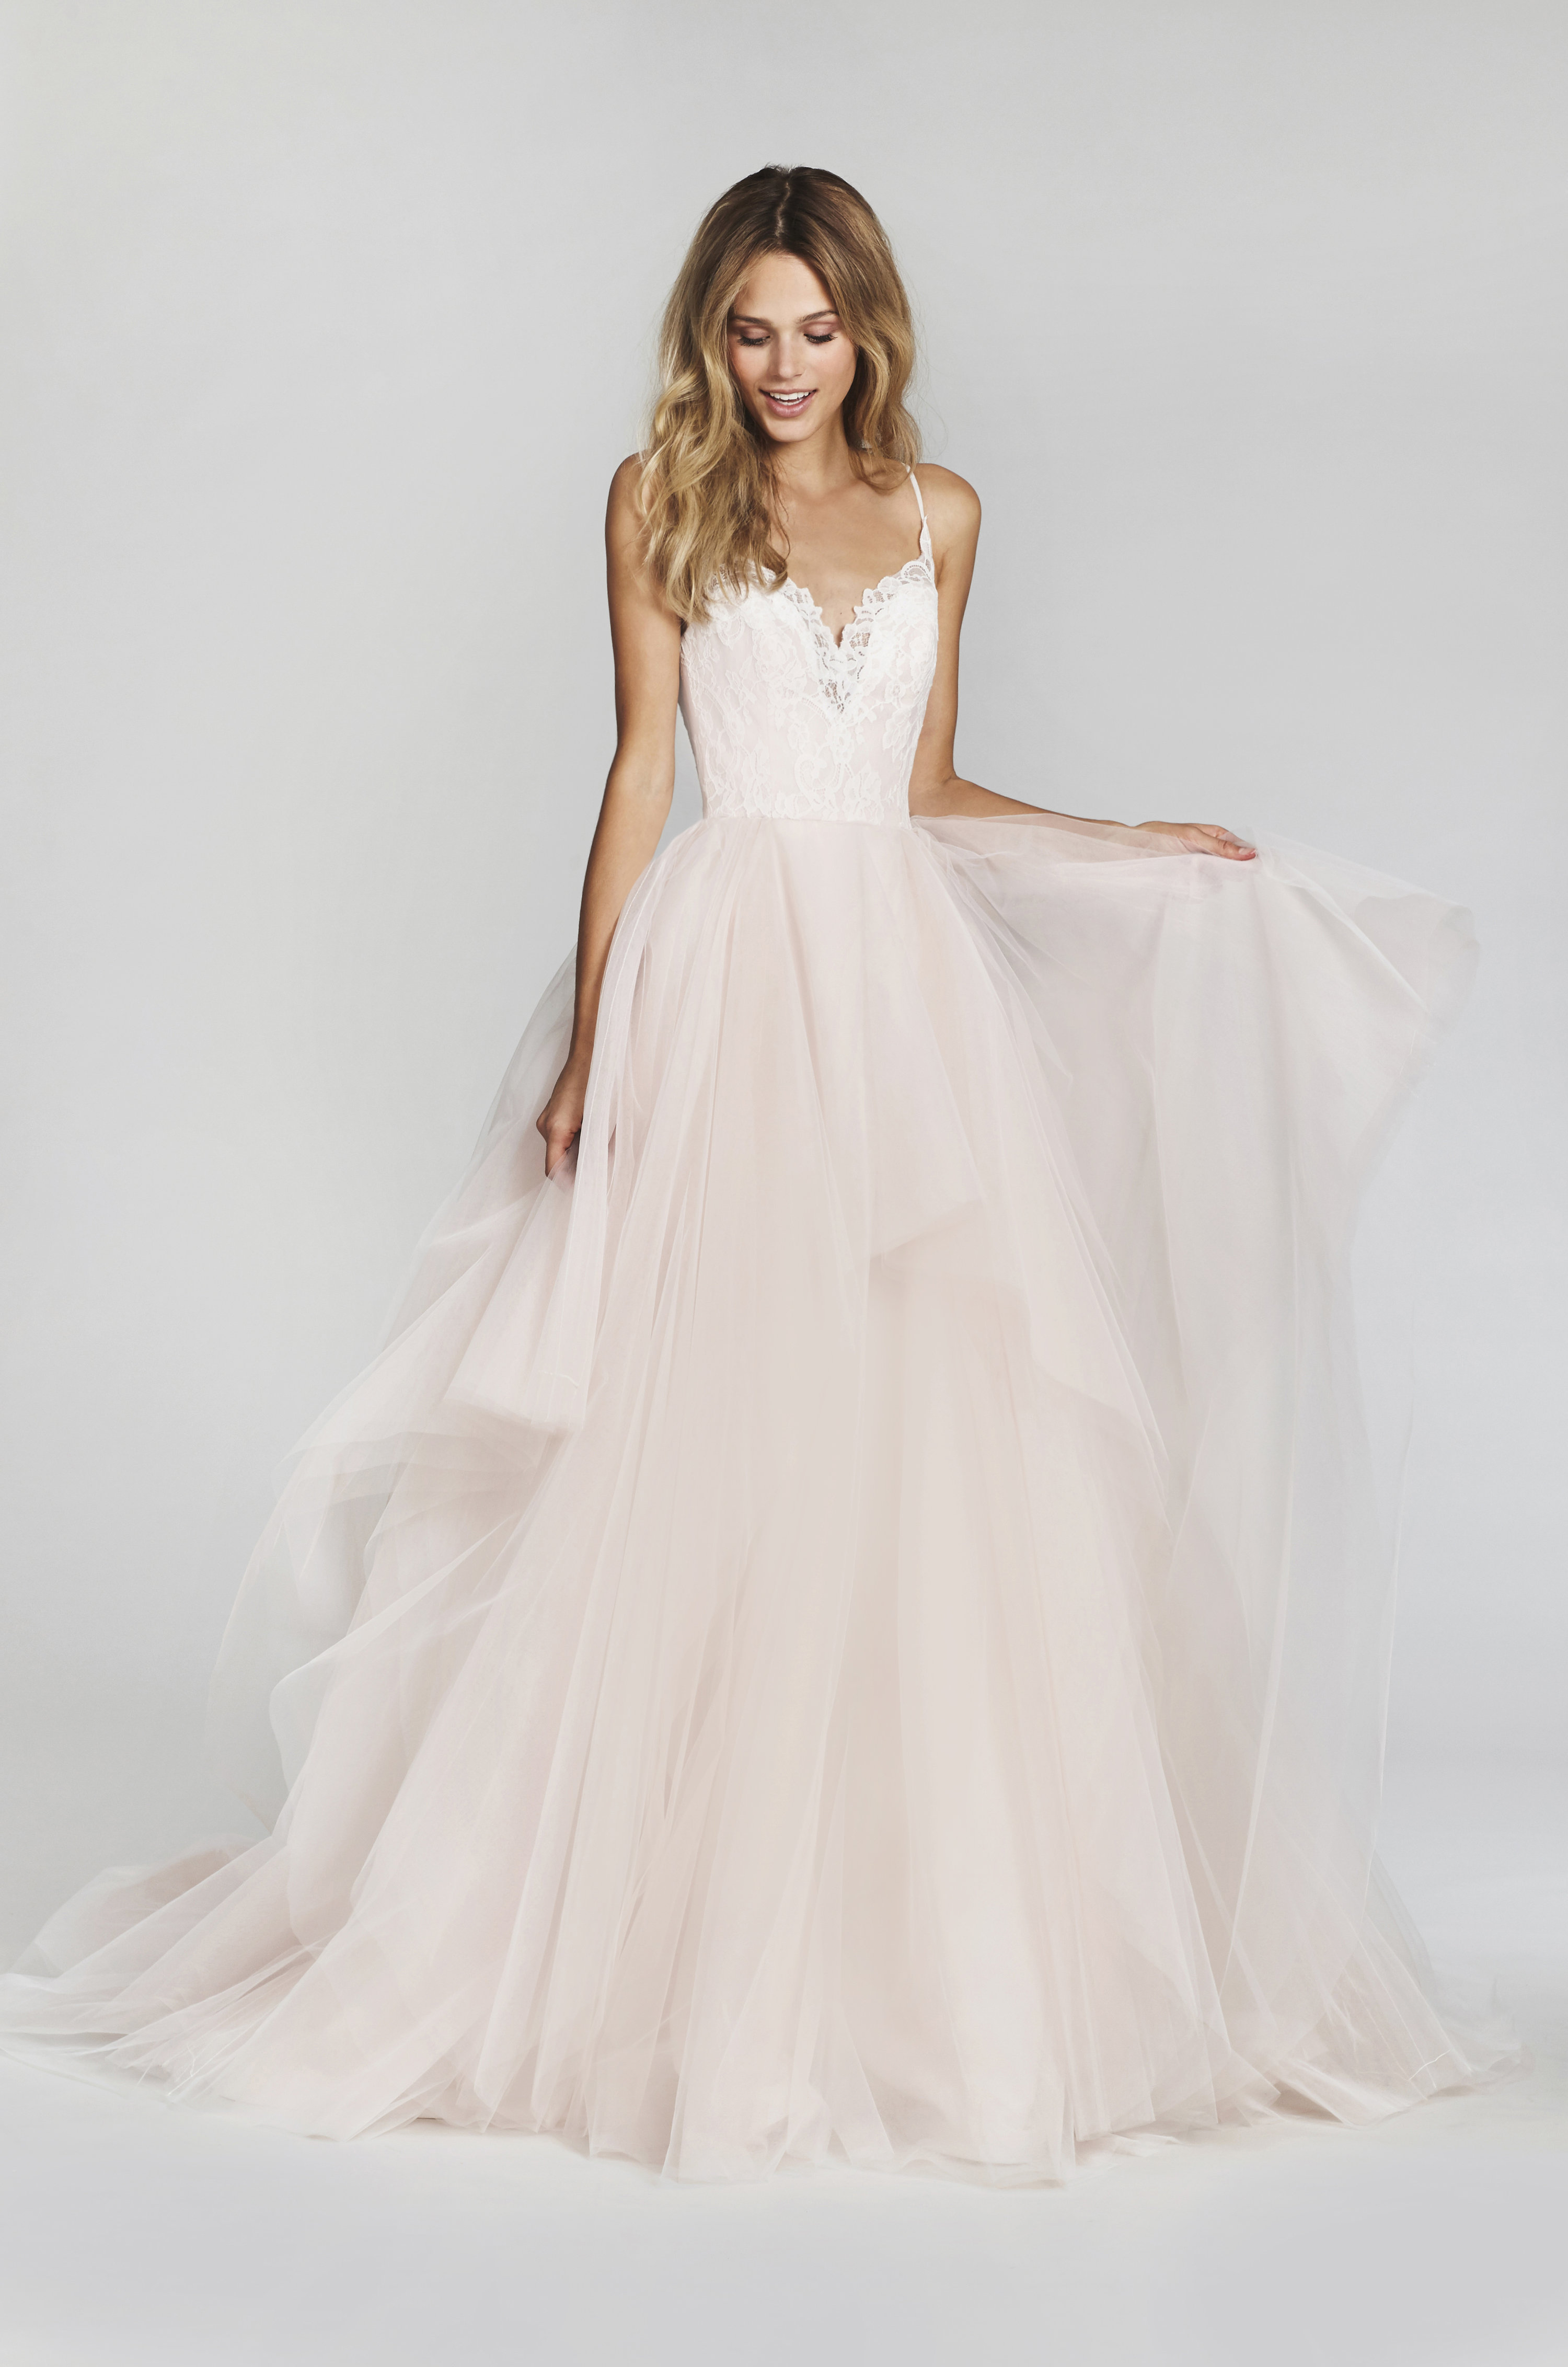 c04e69a1ca97 Blush by Hayley Paige for Jim Hjelm for RK Bridal Wedding Dresses